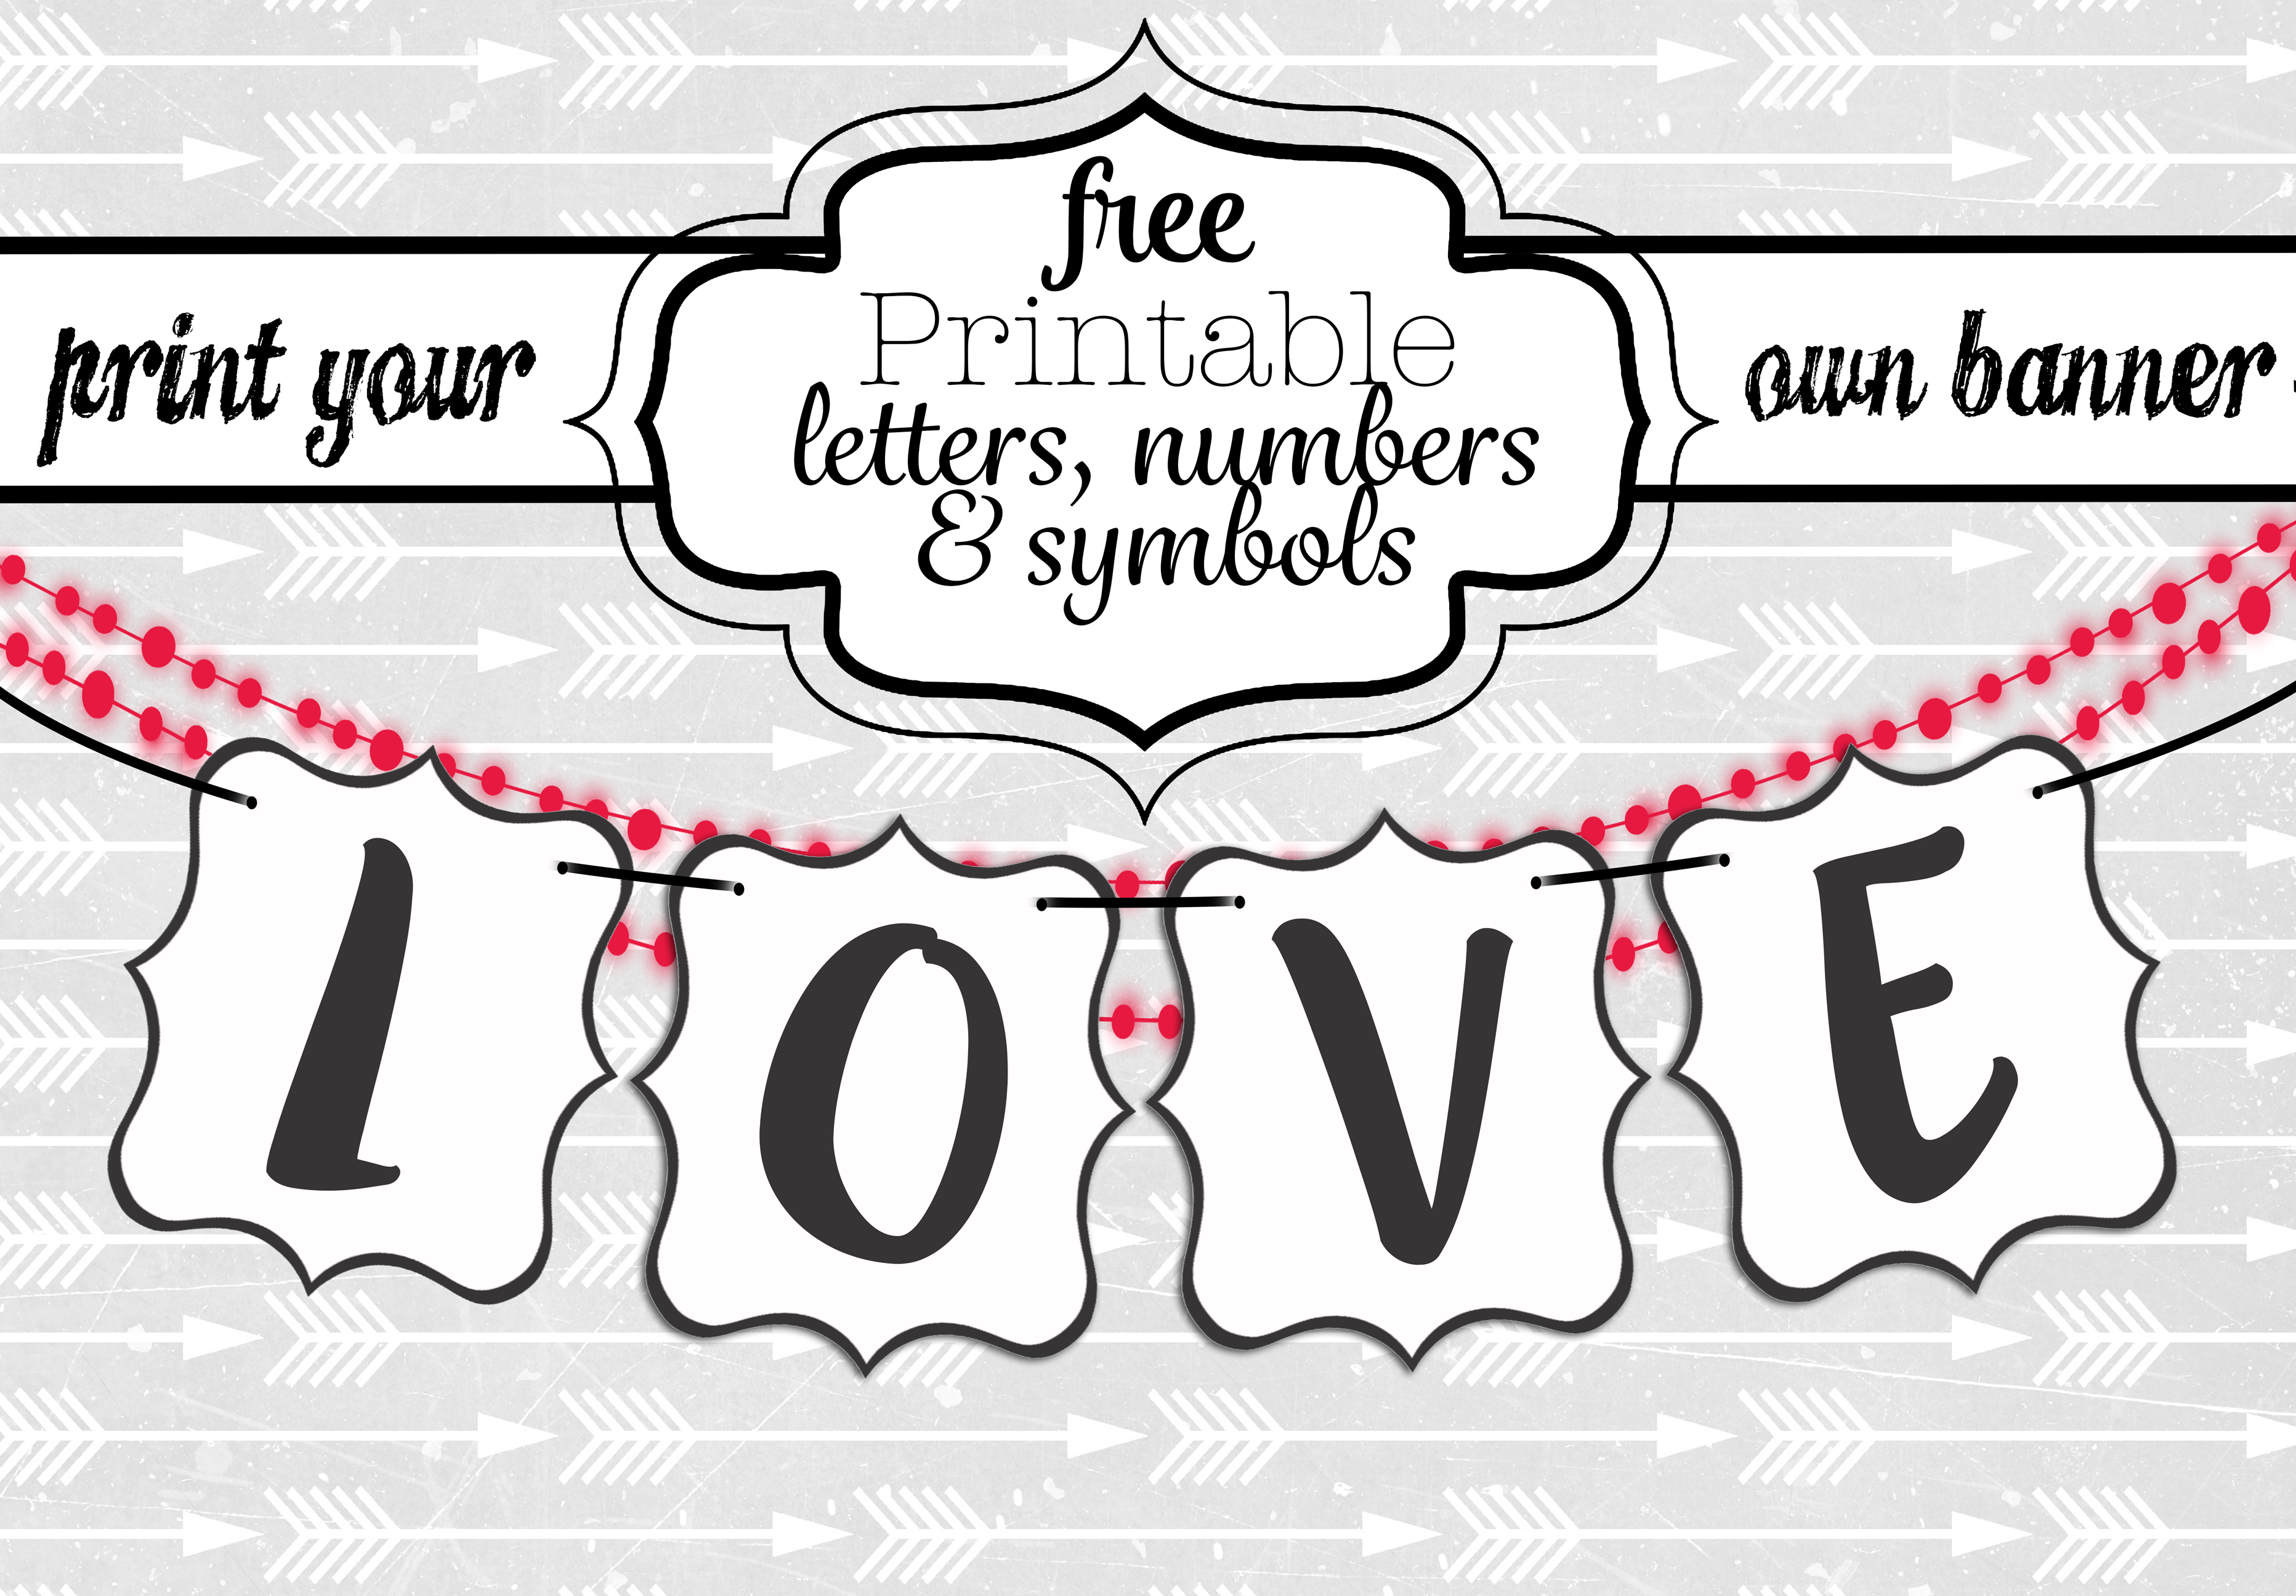 Free Printable Black And White Banner Letters Swanky Design Company Free Printable Letters Printable Banner Letters Banner Letters